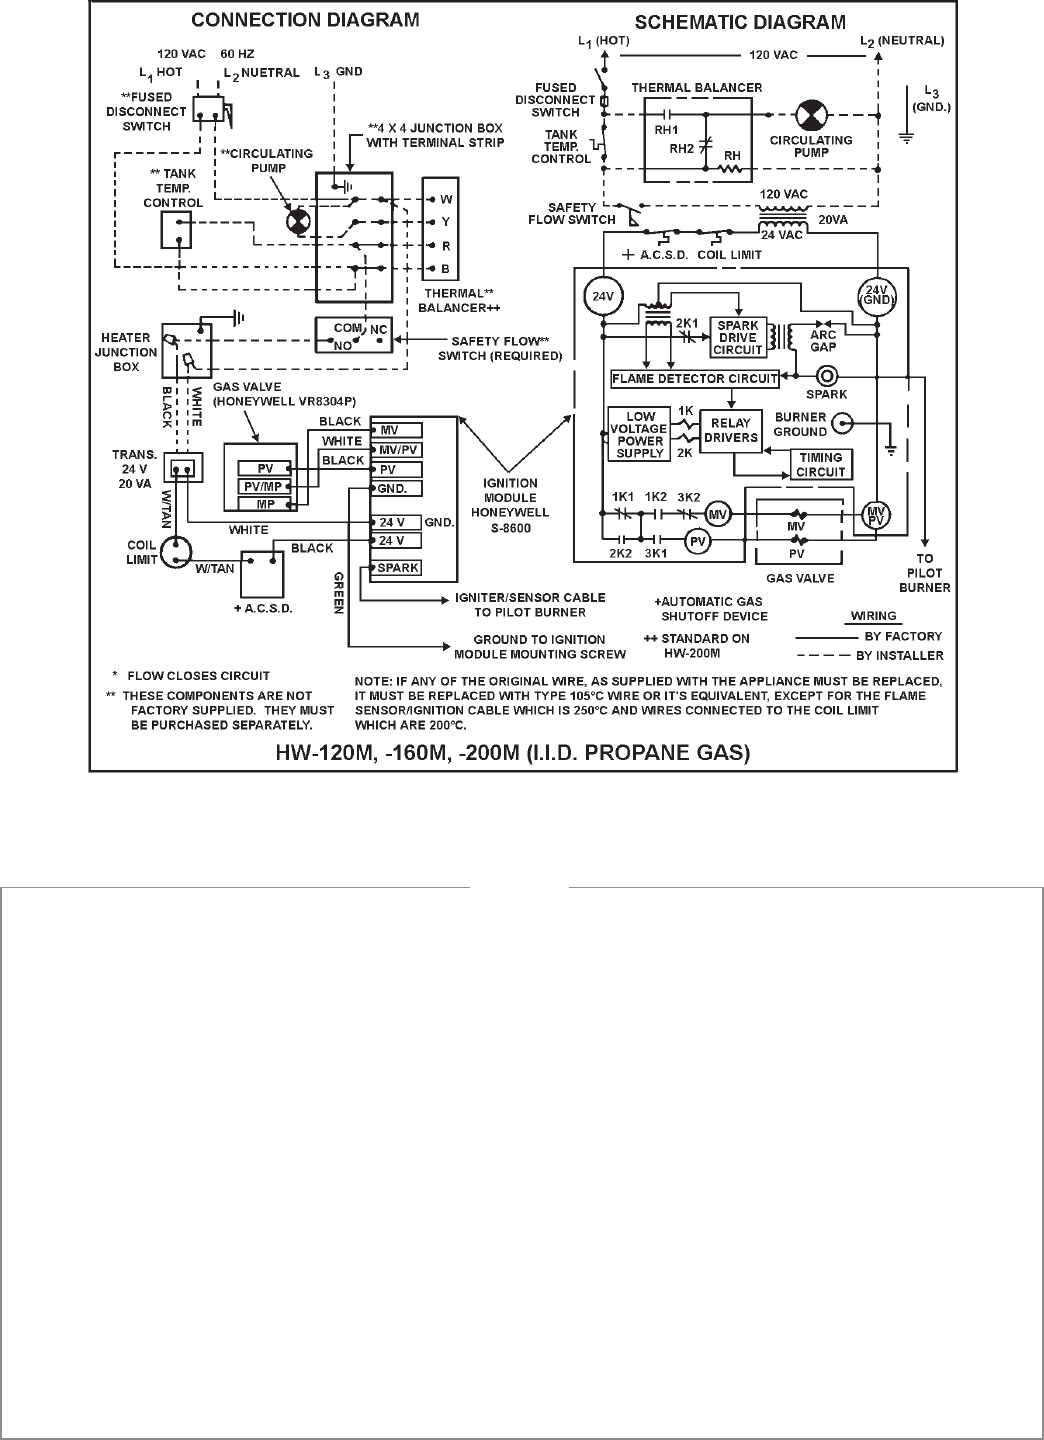 Page 16 Of A O Smith Fan Hw 120m User Guide